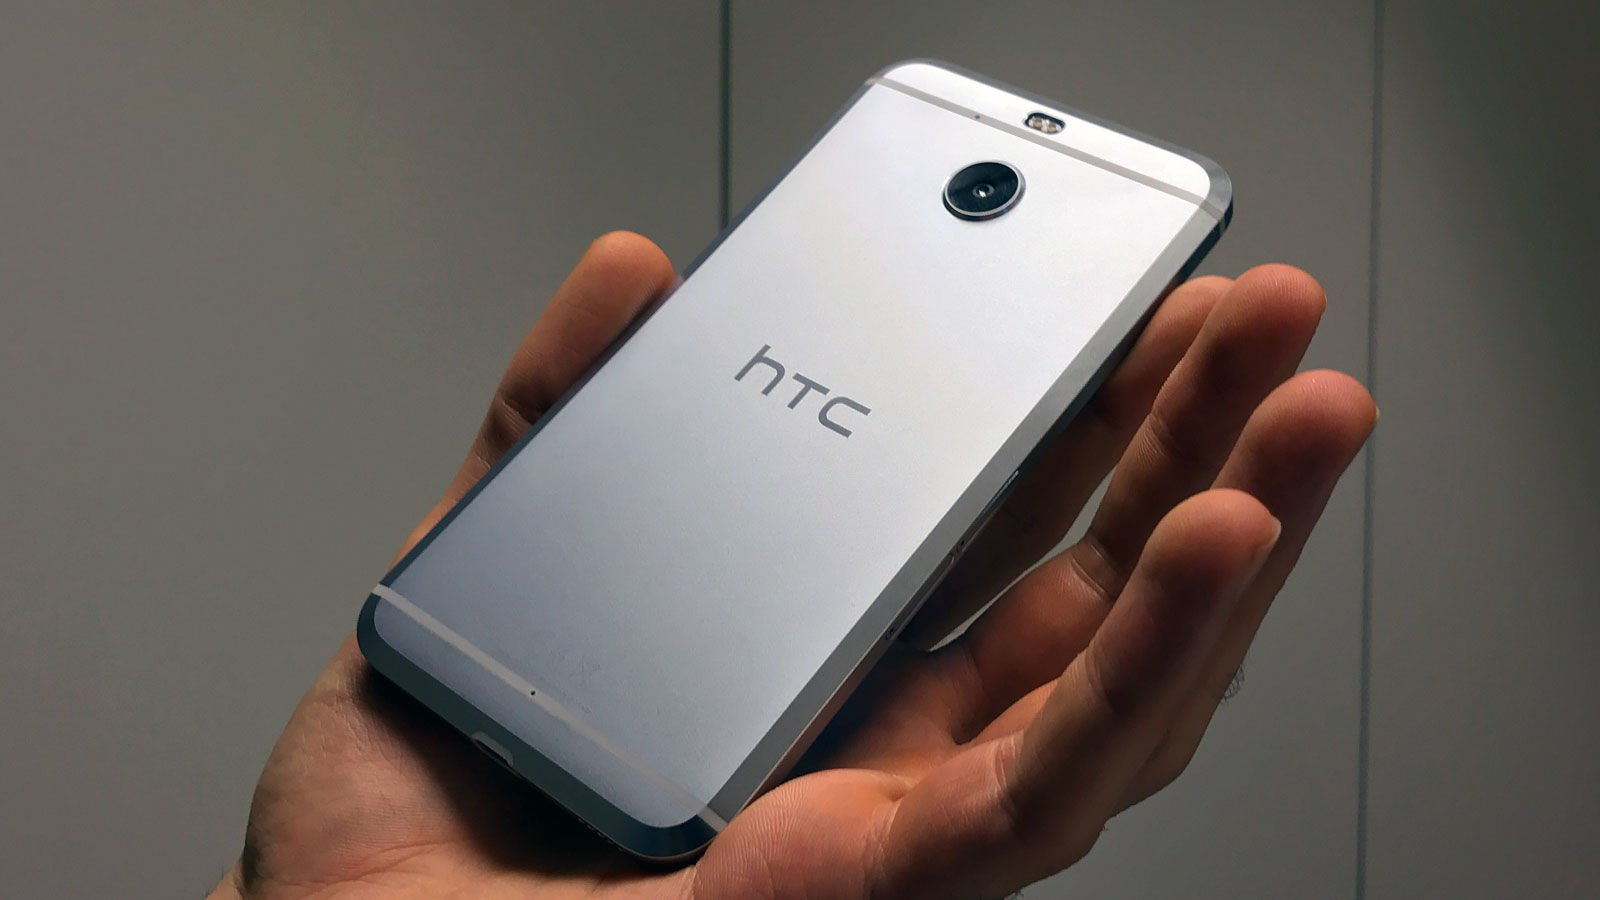 HTC 10 Evo Review: Specifications, Features and Price in India